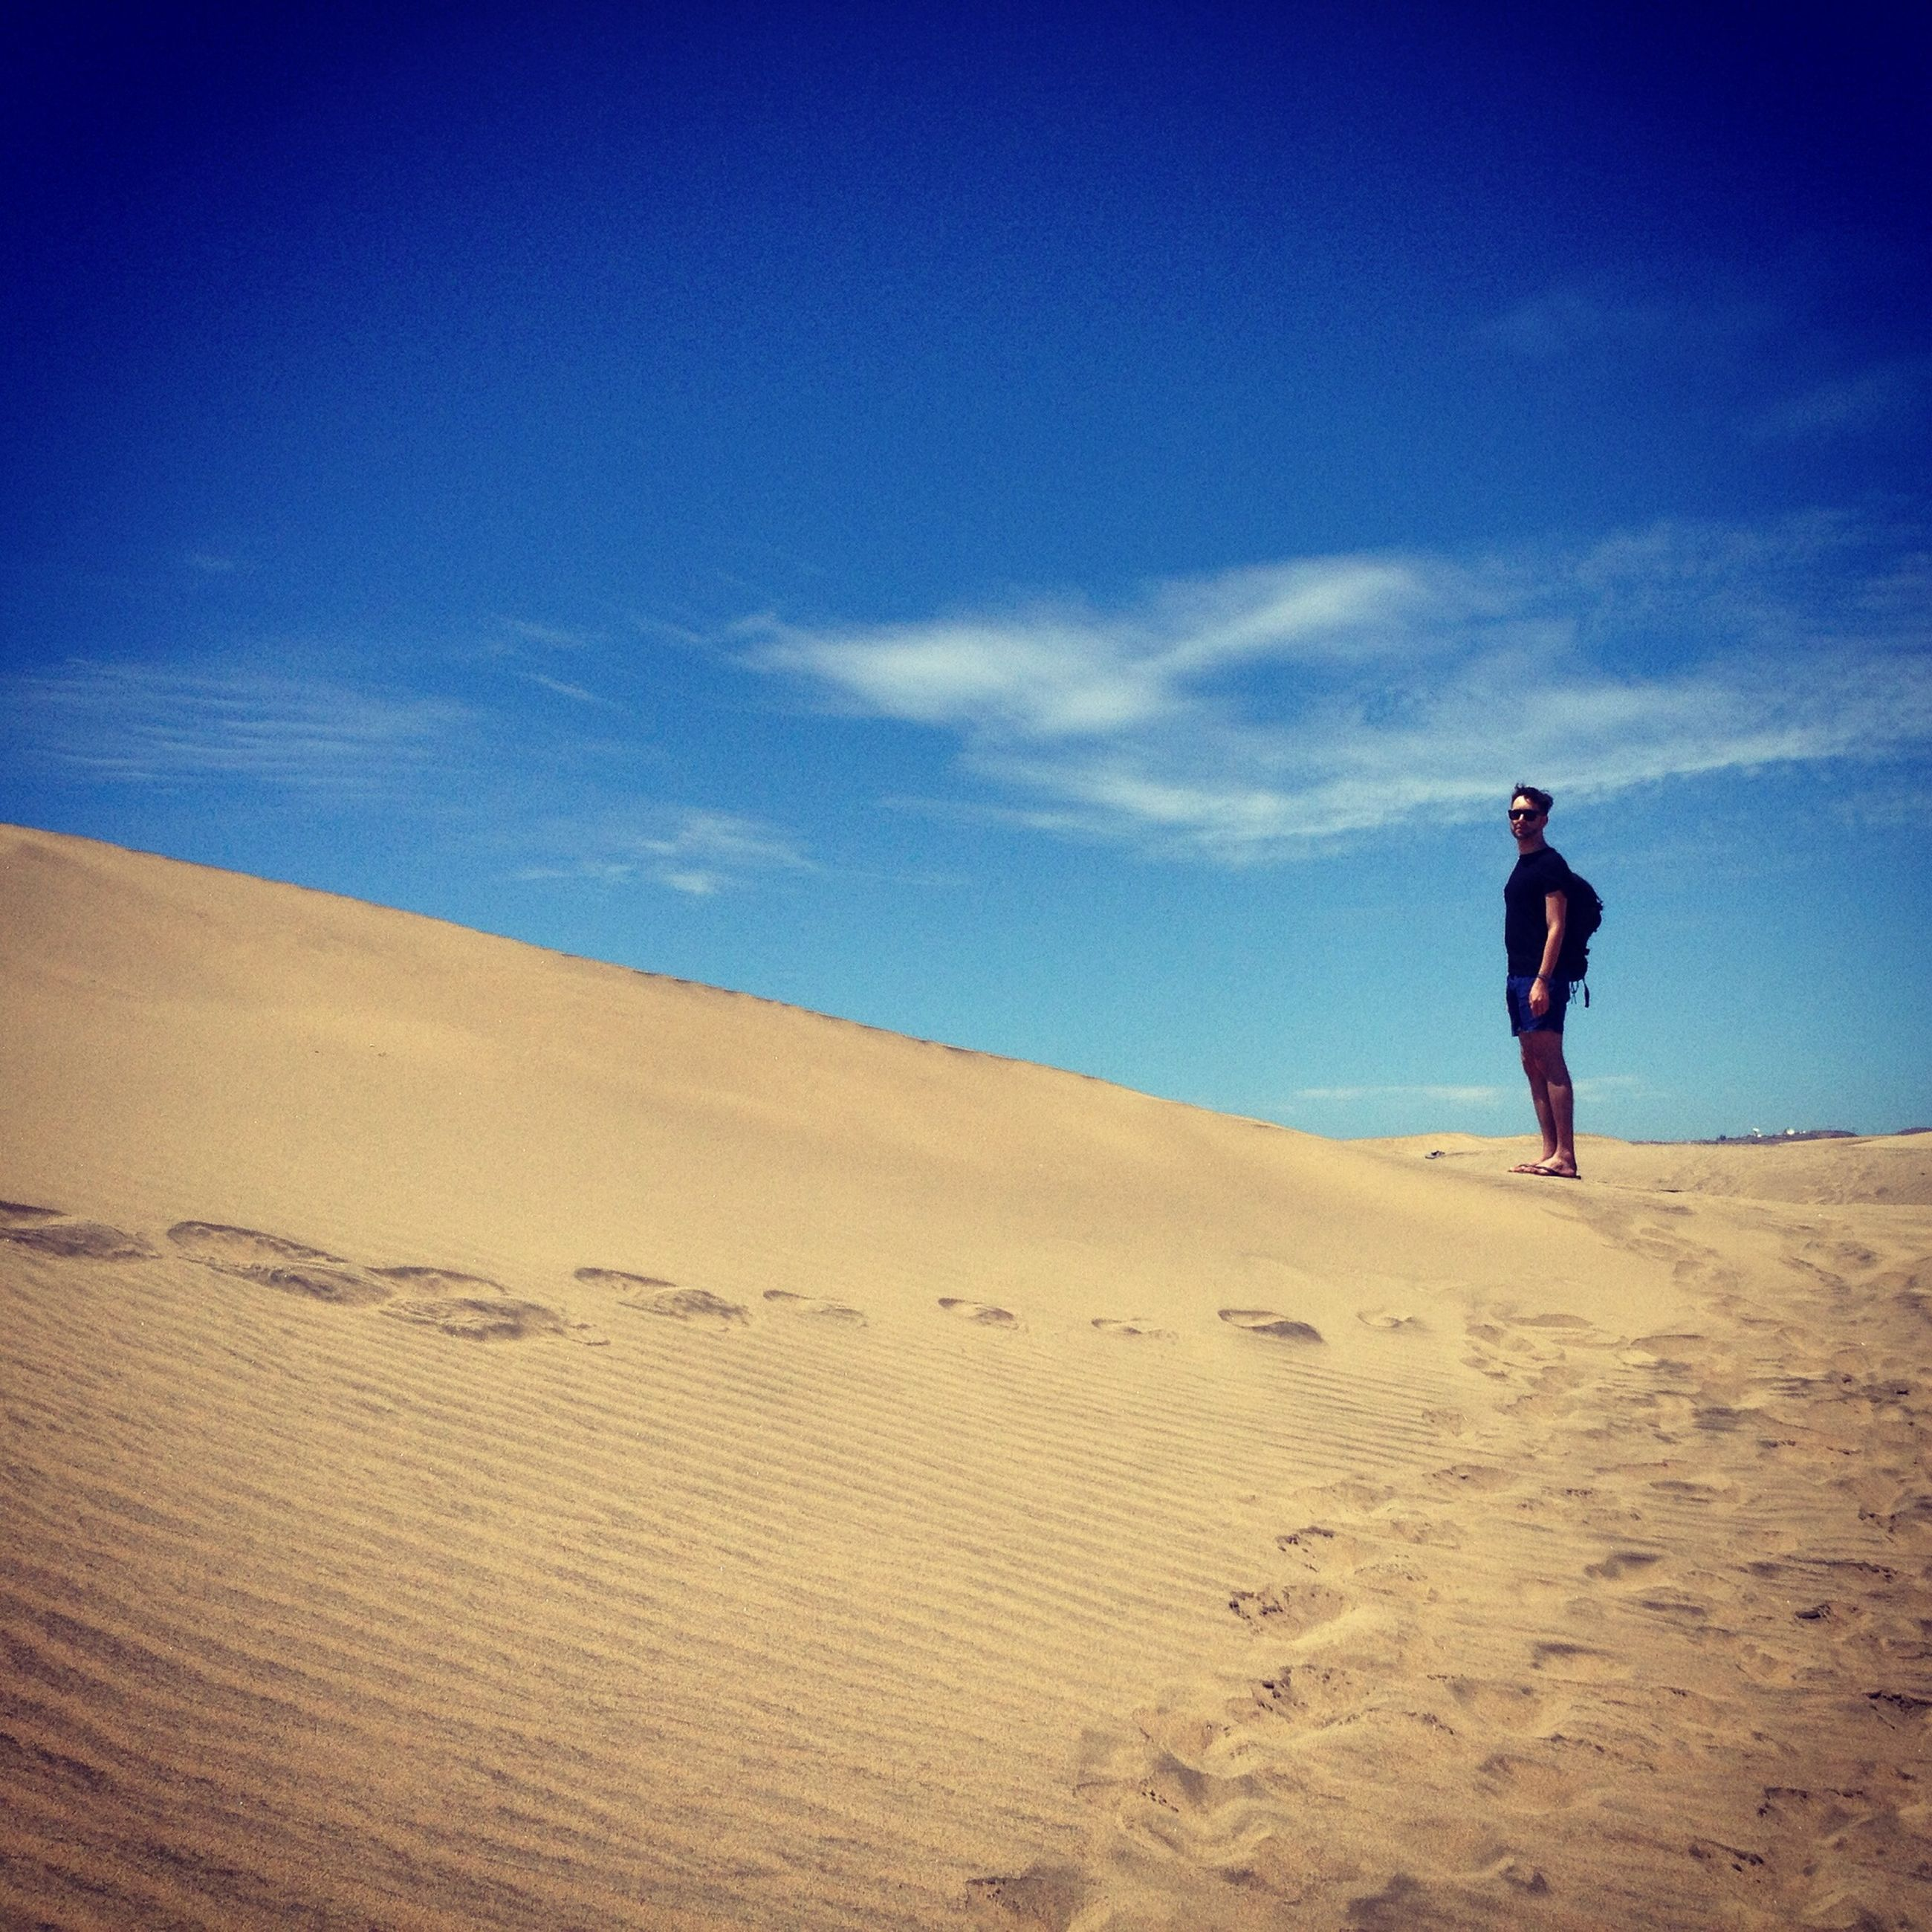 full length, lifestyles, leisure activity, sky, men, casual clothing, rear view, blue, landscape, standing, walking, tranquility, tranquil scene, sand, nature, cloud - sky, cloud, scenics